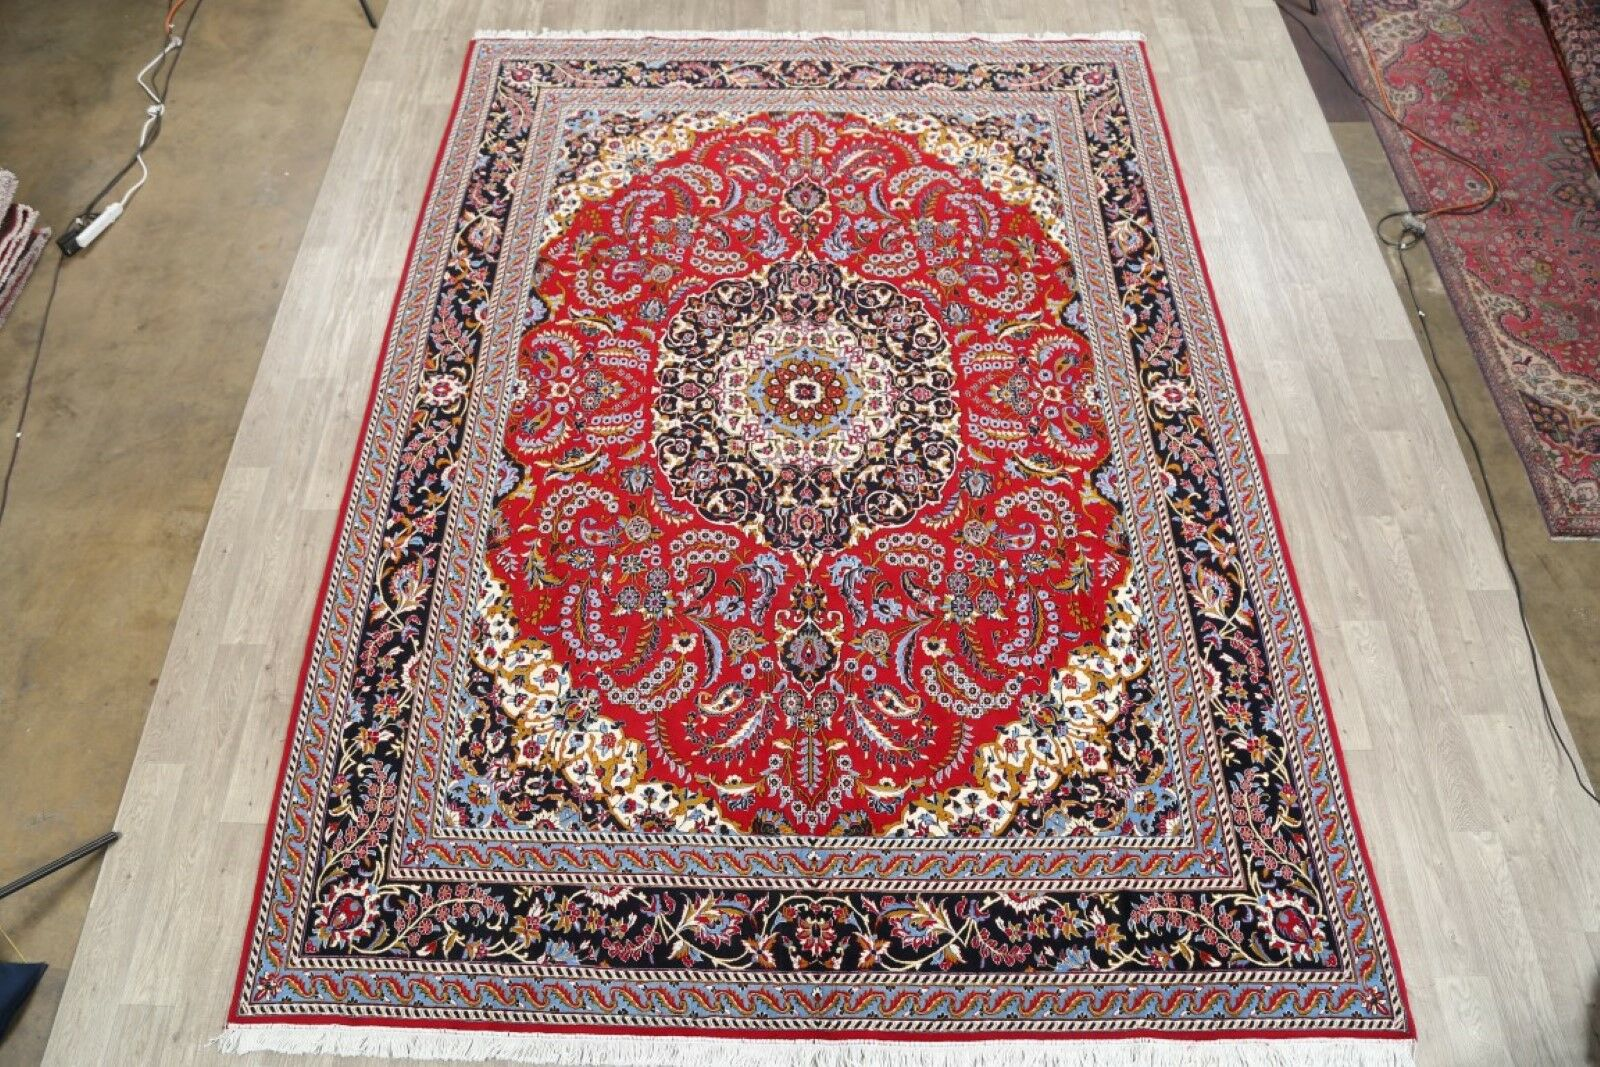 Soft Plush Floral Classical Kashan Persian Red/Ivory/Black Area Rug